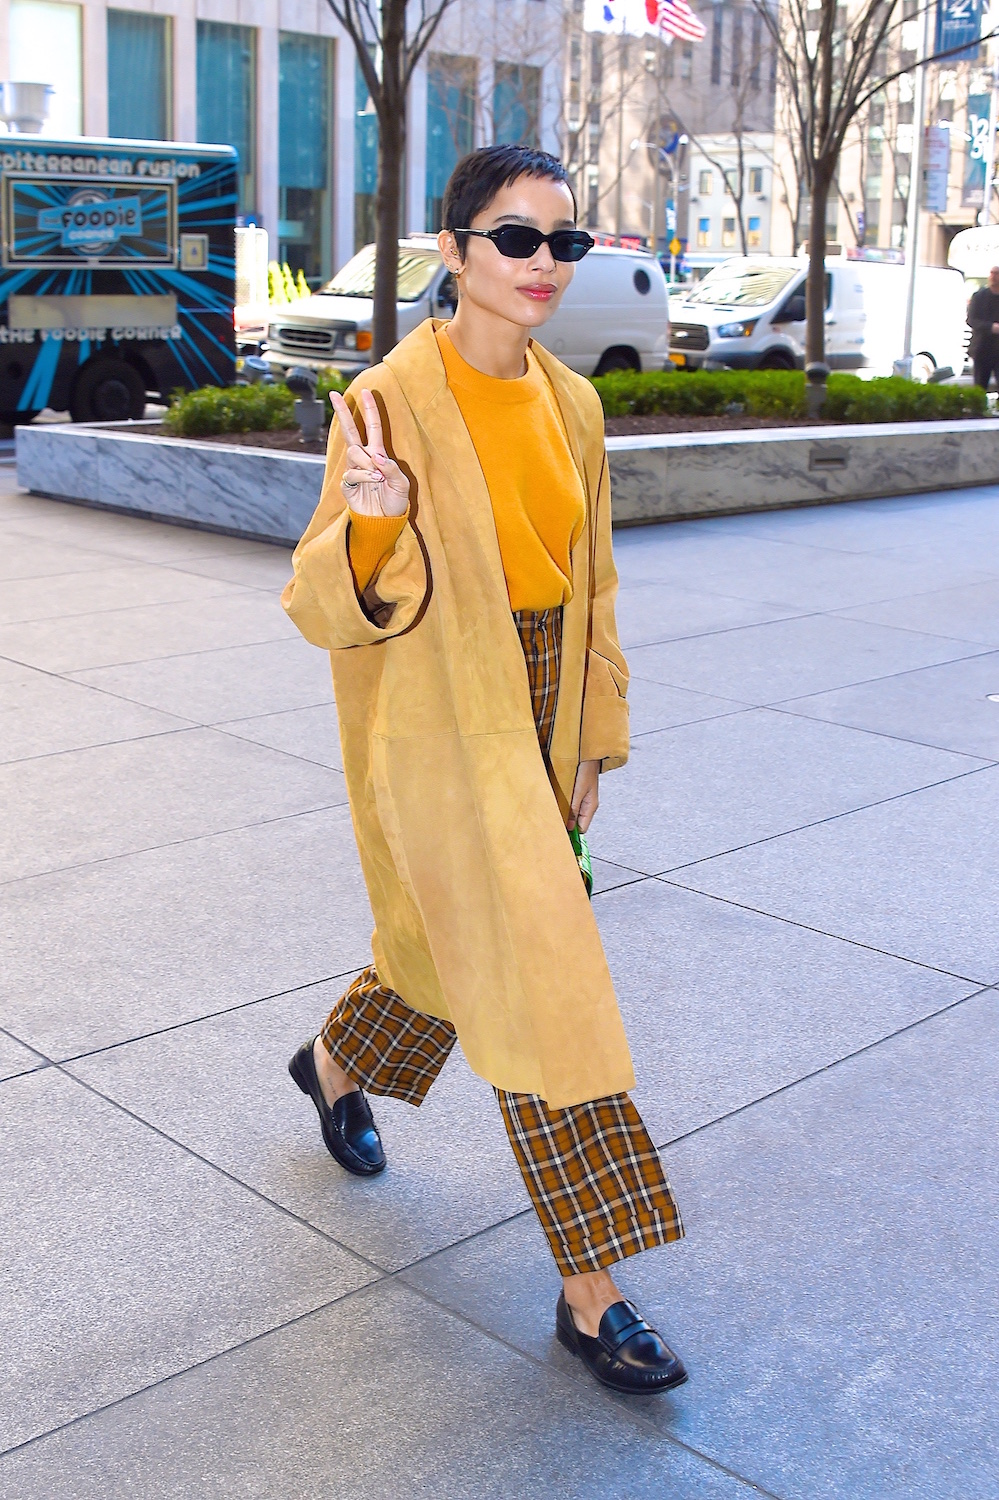 Best Dressed: The 70s Are Back (and These Celebrities Are Proof)